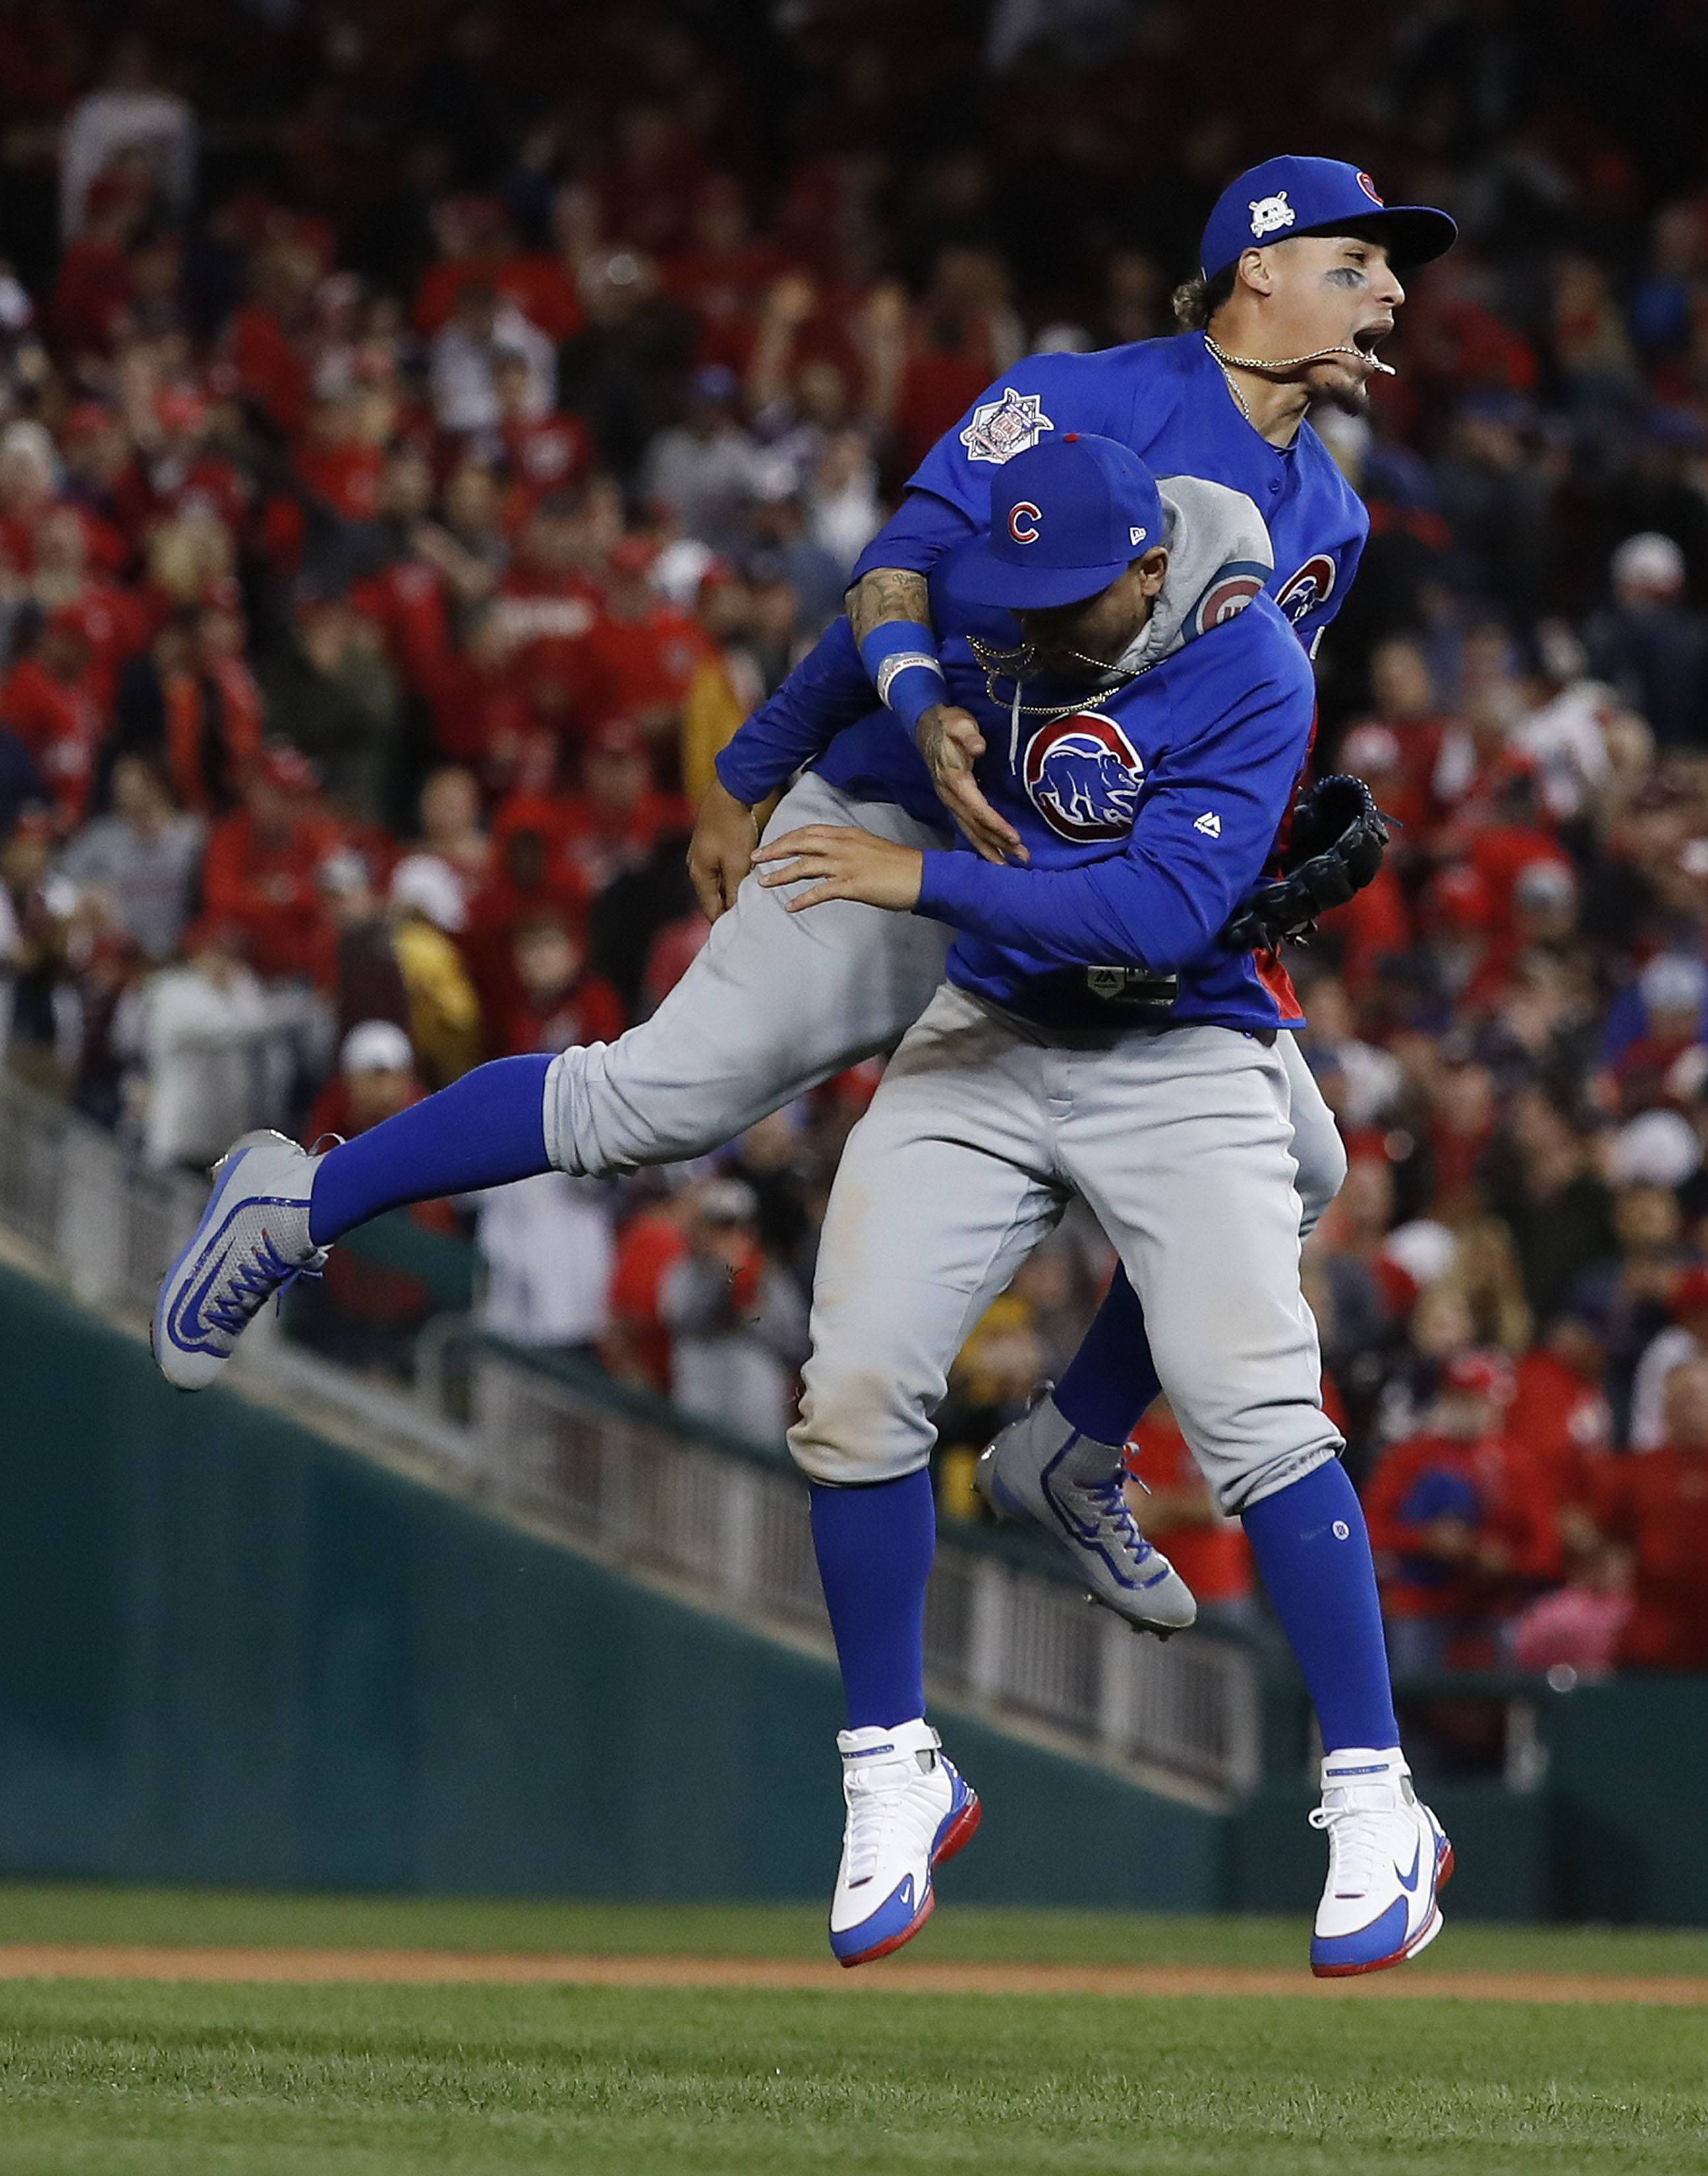 Cubs Javier Baez and Jon Jay celebrate after beating the Washington Nationals 9-8 to to win baseball's National League Division Series, at Nationals Park, early Friday, in Washington. The Cubs' championship window remains wide open as they head to the NLCS for the third straight year.